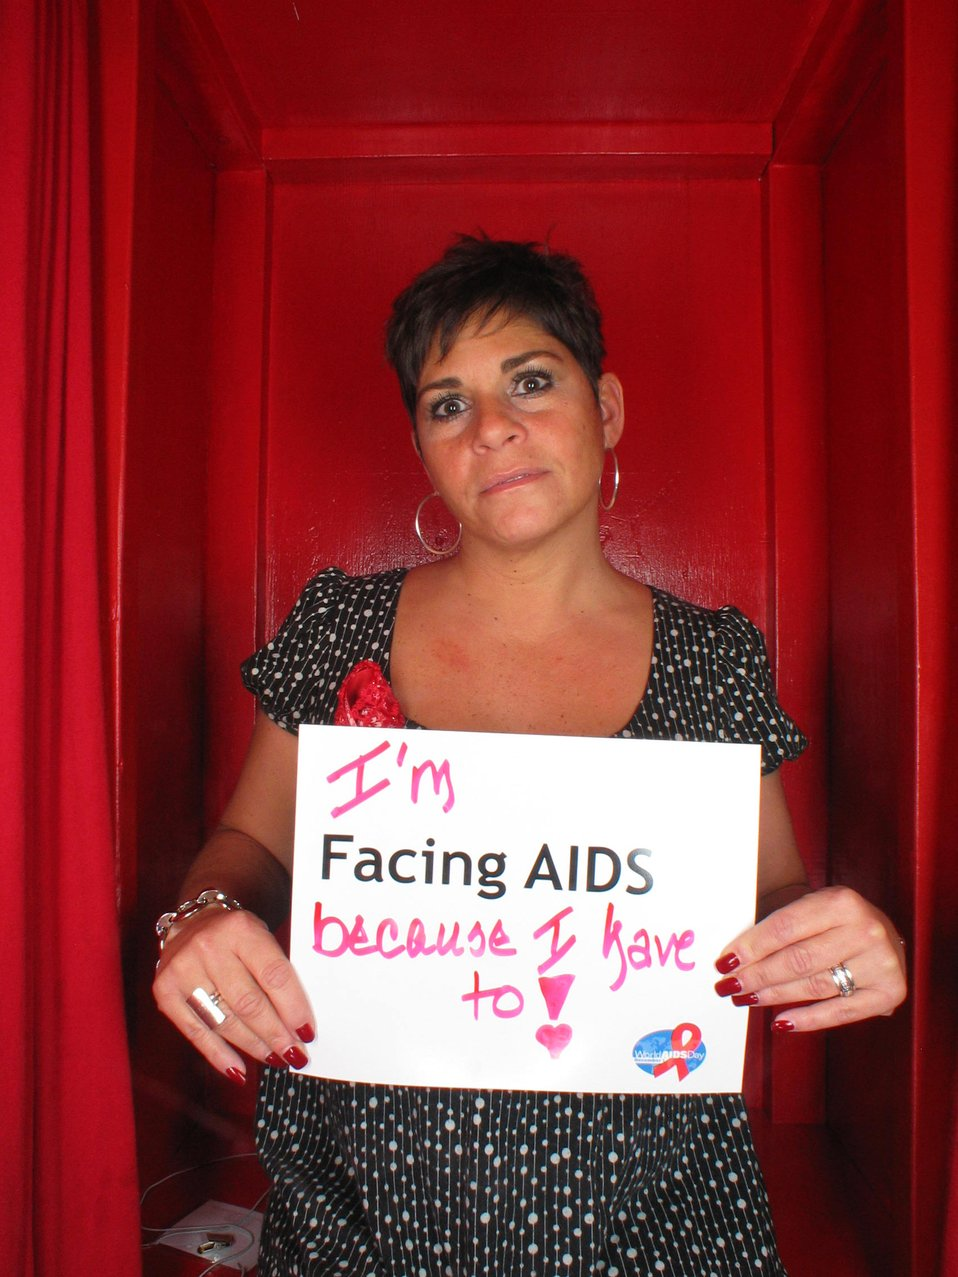 I'm Facing AIDS because I have to!